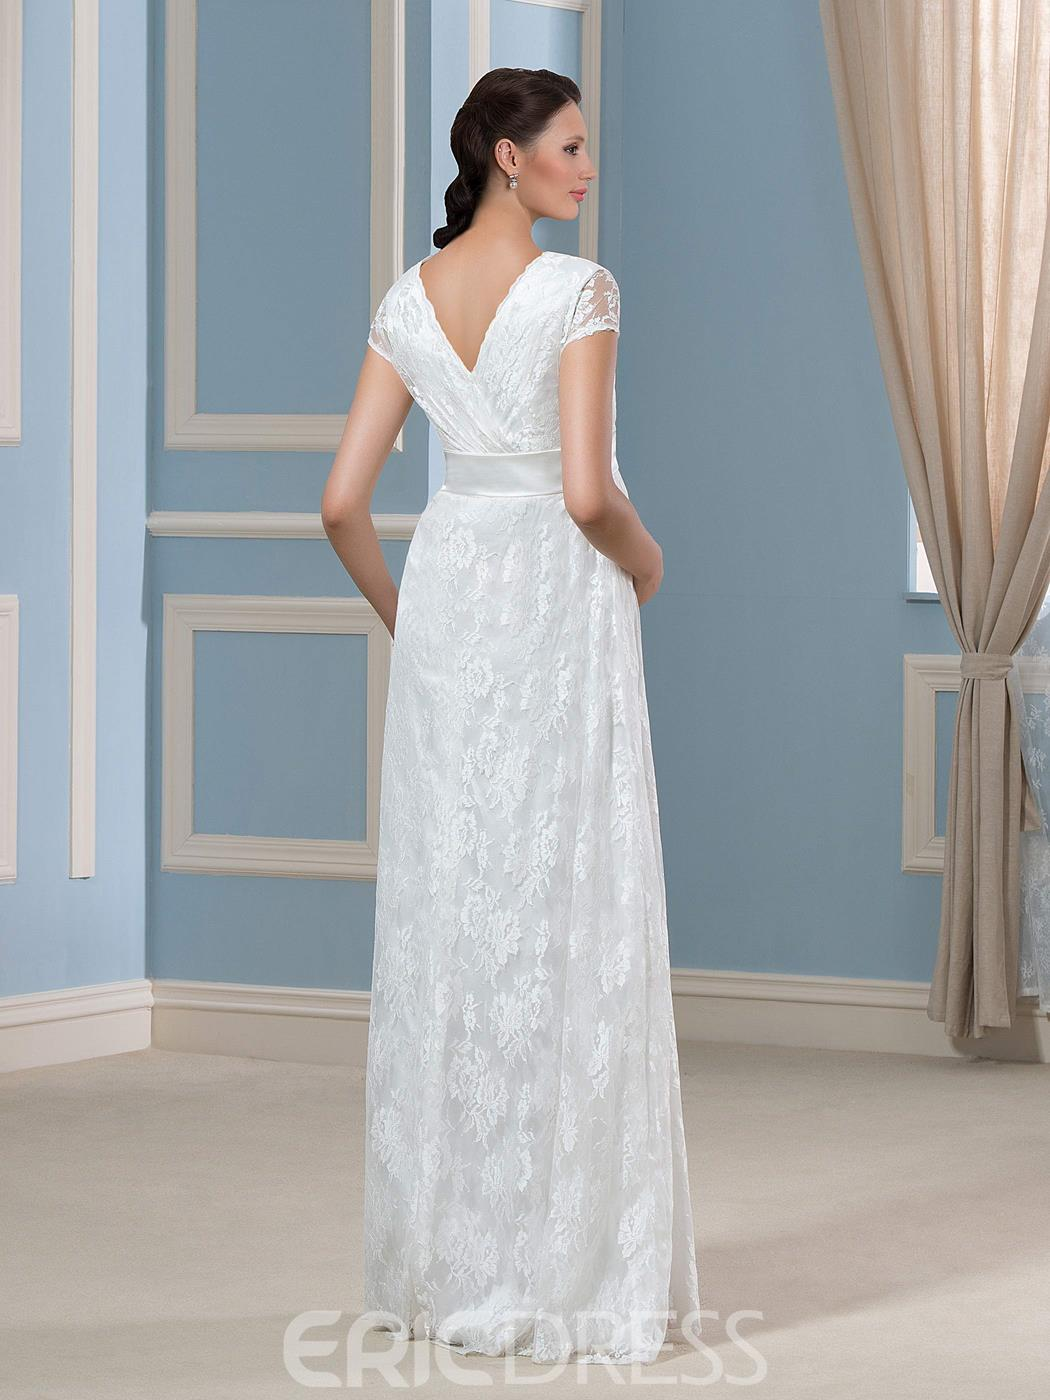 Comfortable Lace Maternity Wedding Dresses Pictures Inspiration ...